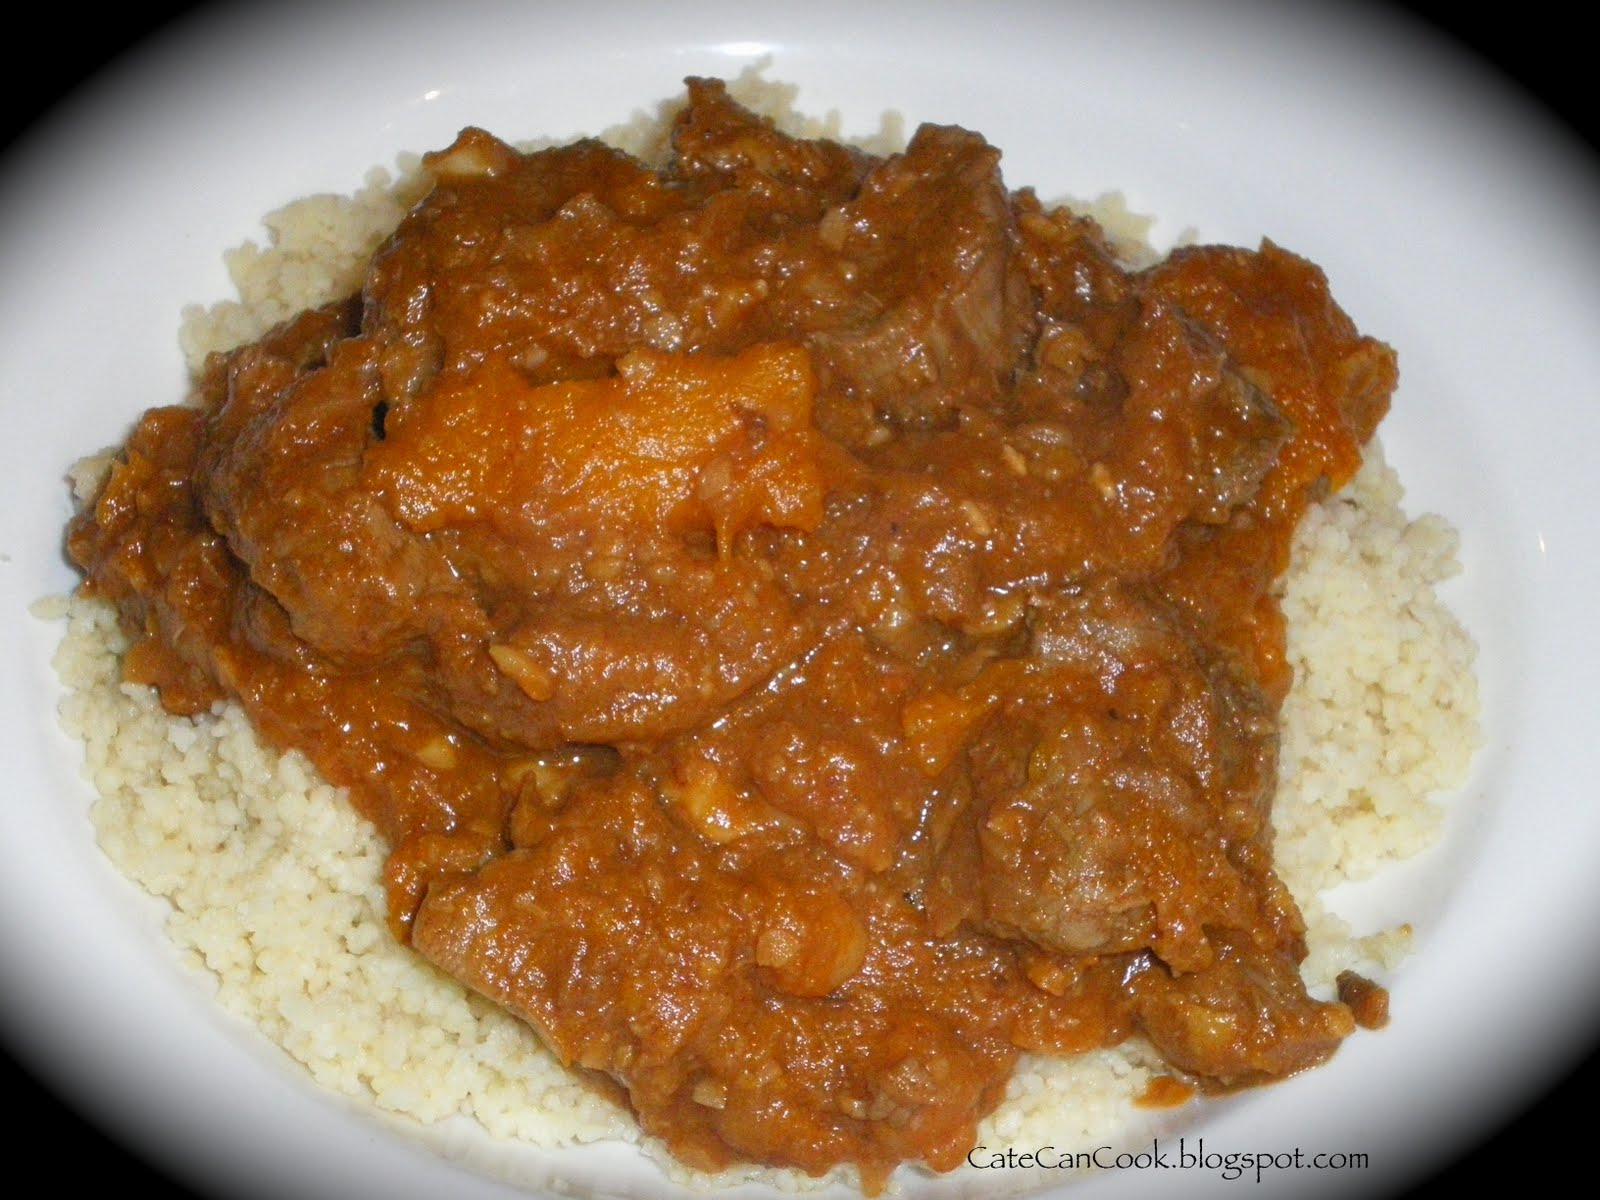 ... Cook, So Can You!!: Moroccan Lamb and Pumpkin Casserole with Couscous